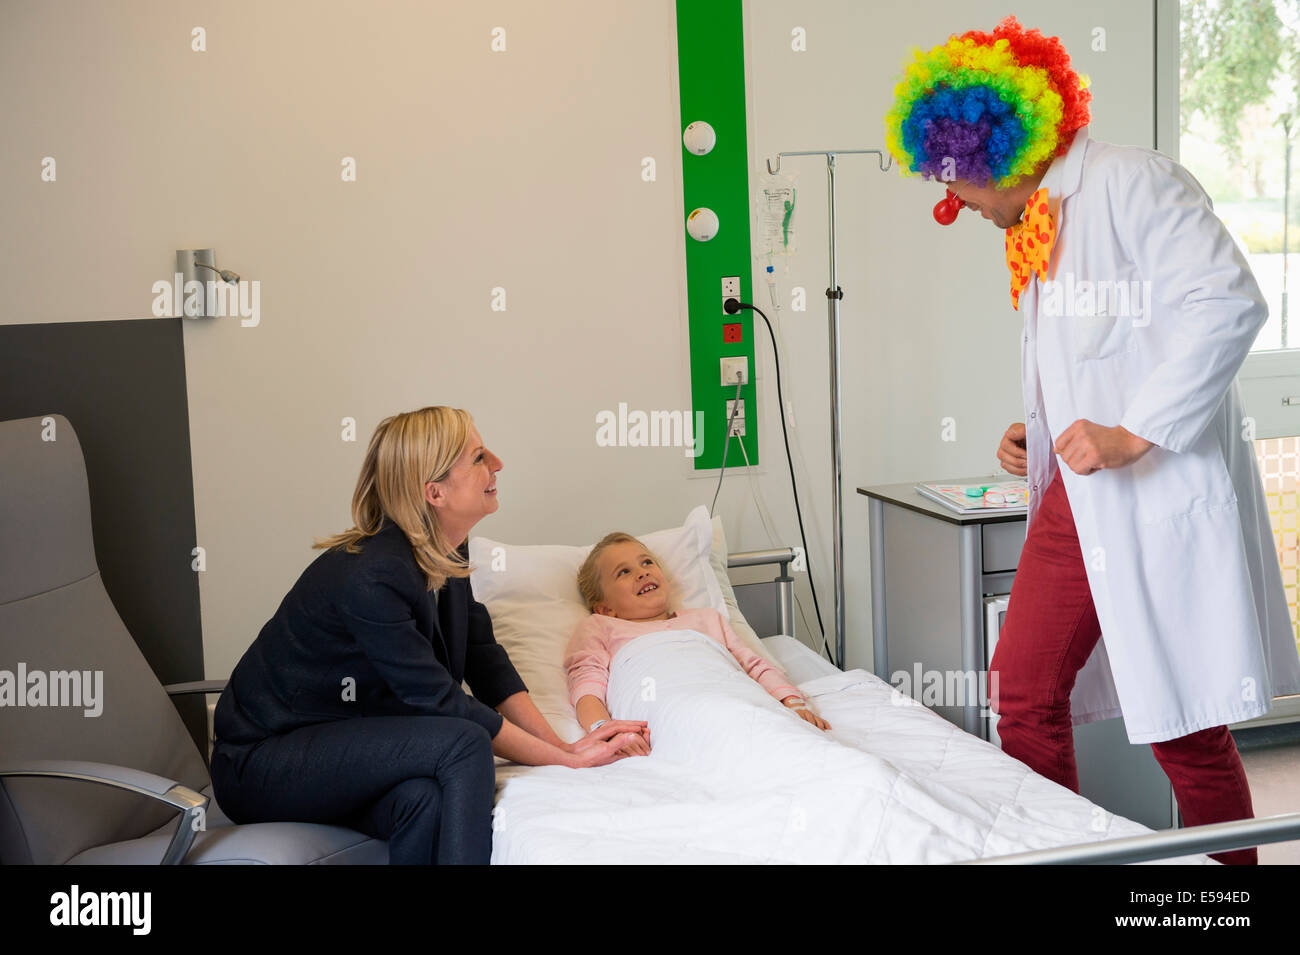 Médecin homme portant costume clown fille faisant rire patient in hospital bed Photo Stock